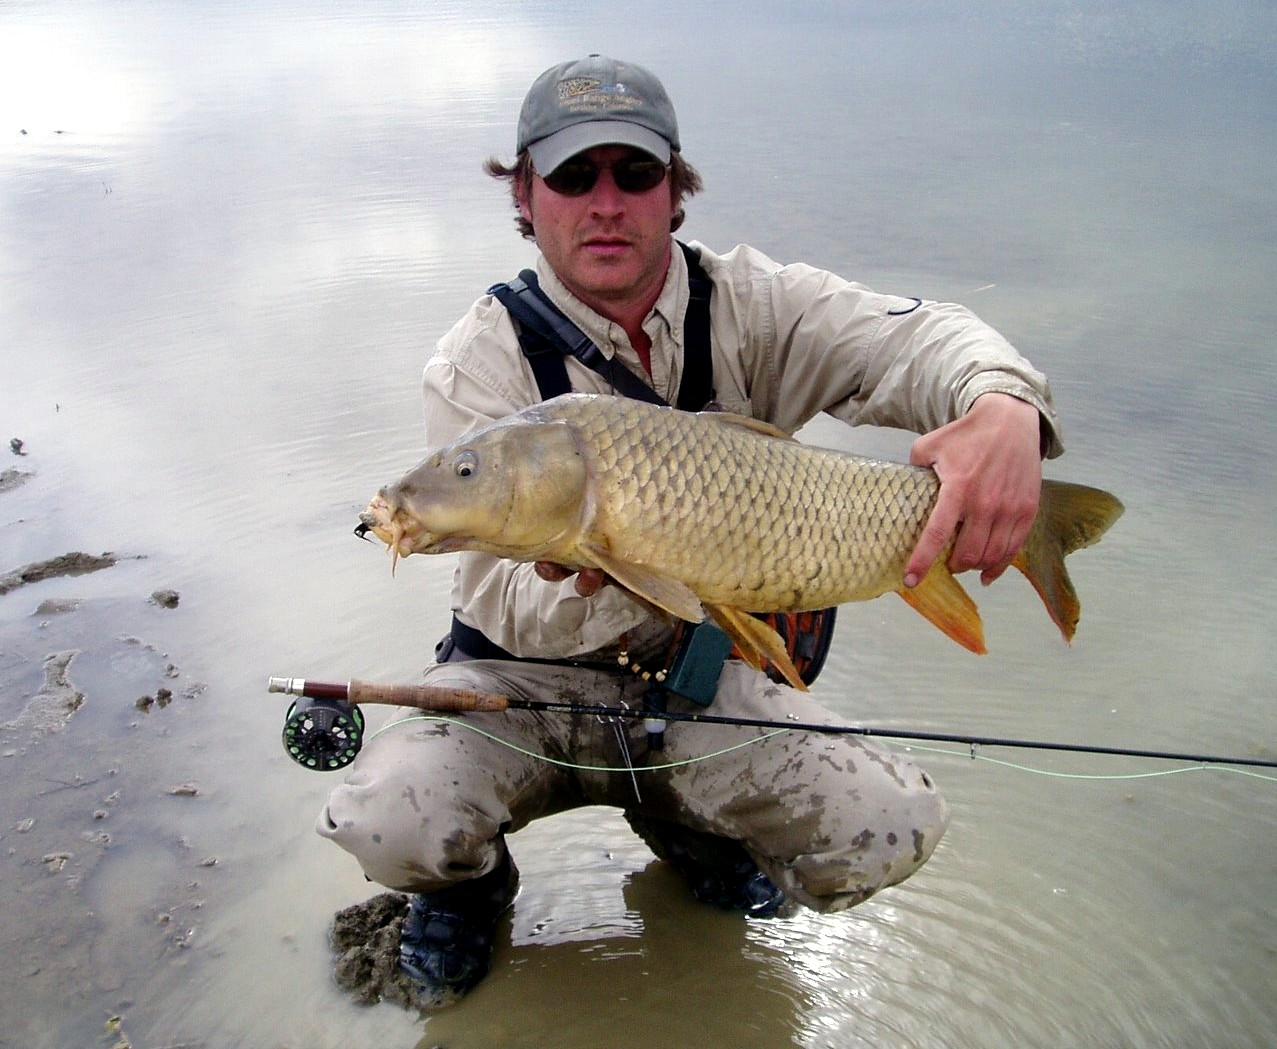 ce9510981cd32 Have the discipline not to fish to every single carp you see. Pick your  battles and focus on specific fish that may be actively feeding or are  displaying ...